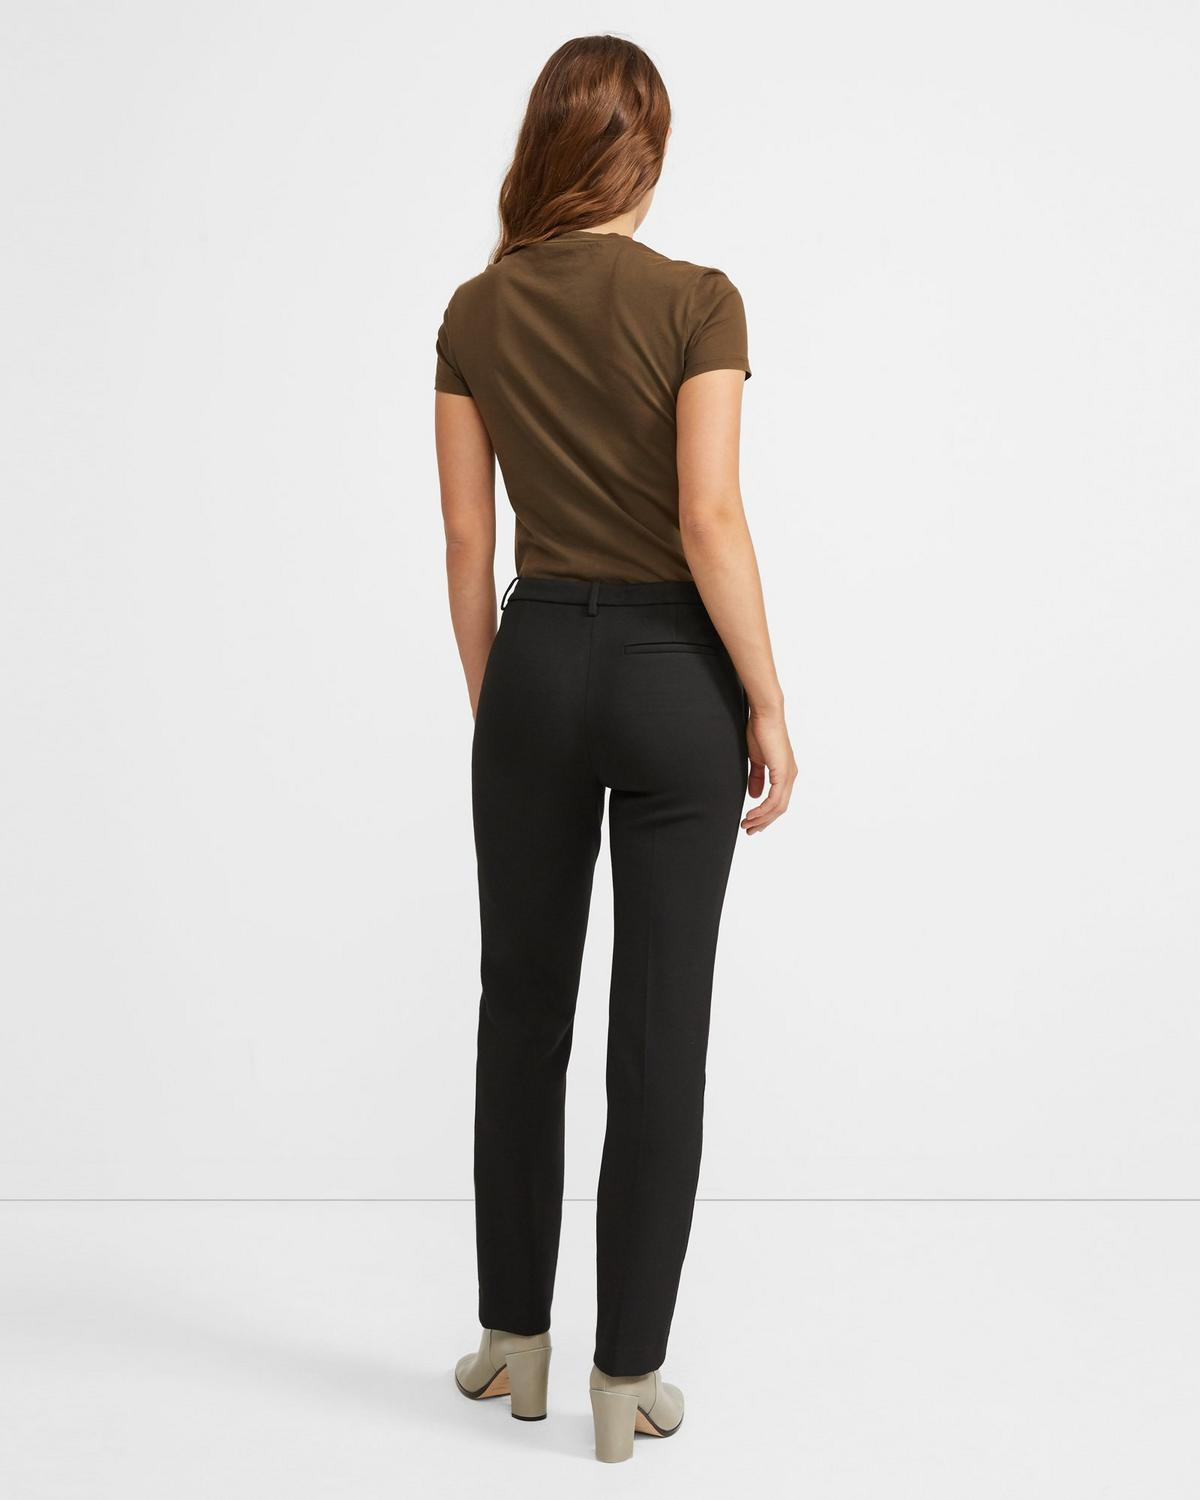 Treeca Full Length Pant in Double Knit Jersey